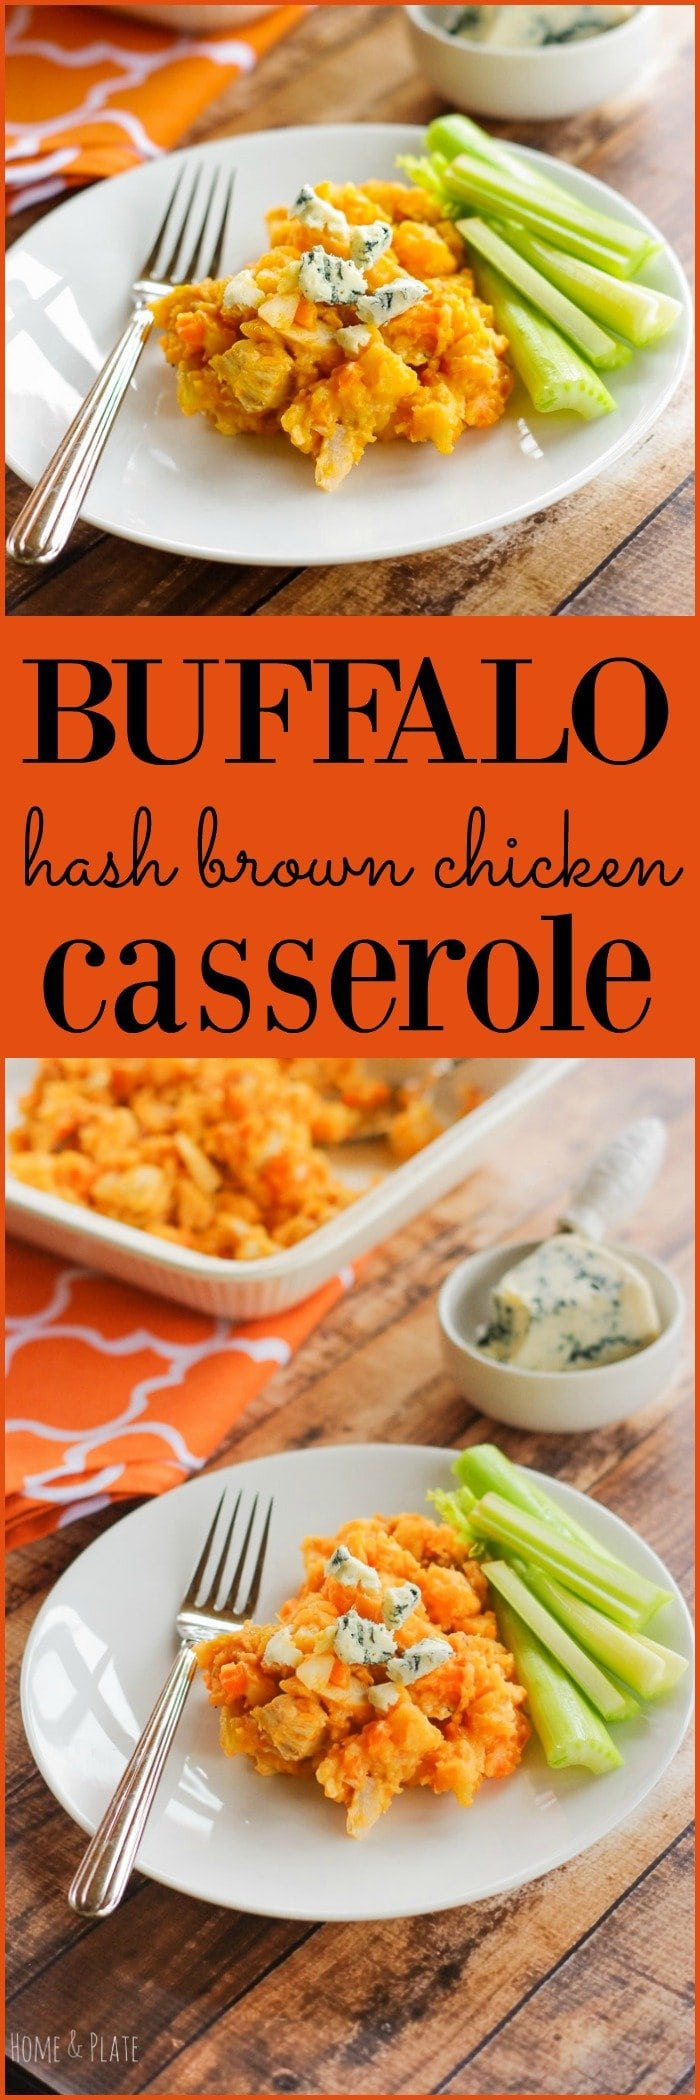 Buffalo Hash Brown Chicken Casserole | www.homeandplate.com | There